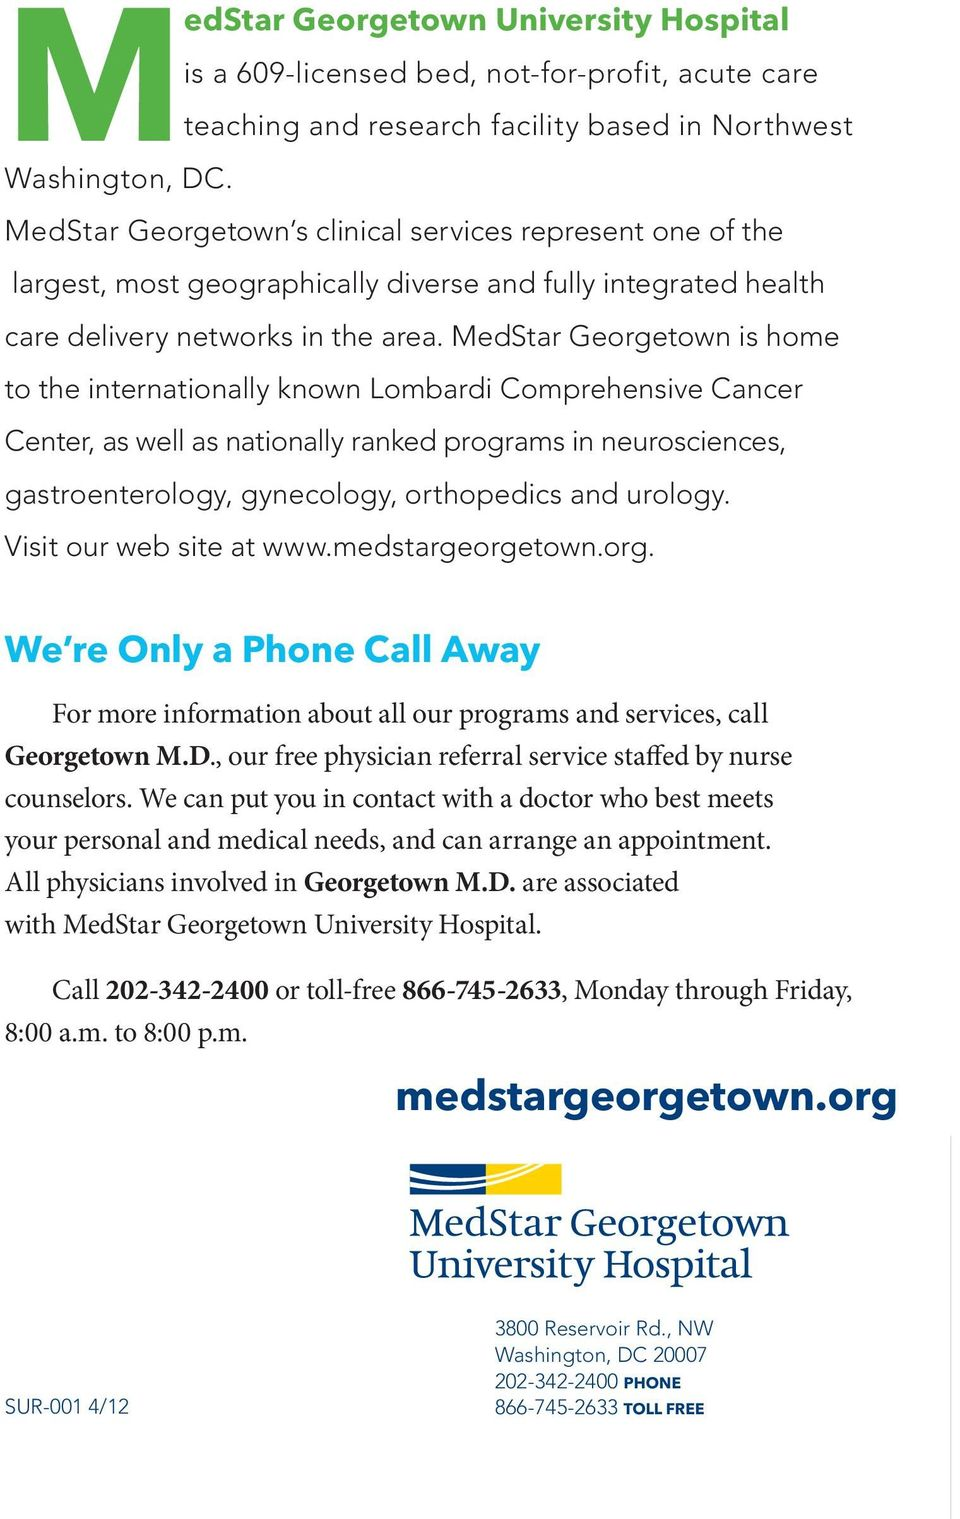 MedStar Georgetown is home to the internationally known Lombardi Comprehensive Cancer Center, as well as nationally ranked programs in neurosciences, gastroenterology, gynecology, orthopedics and